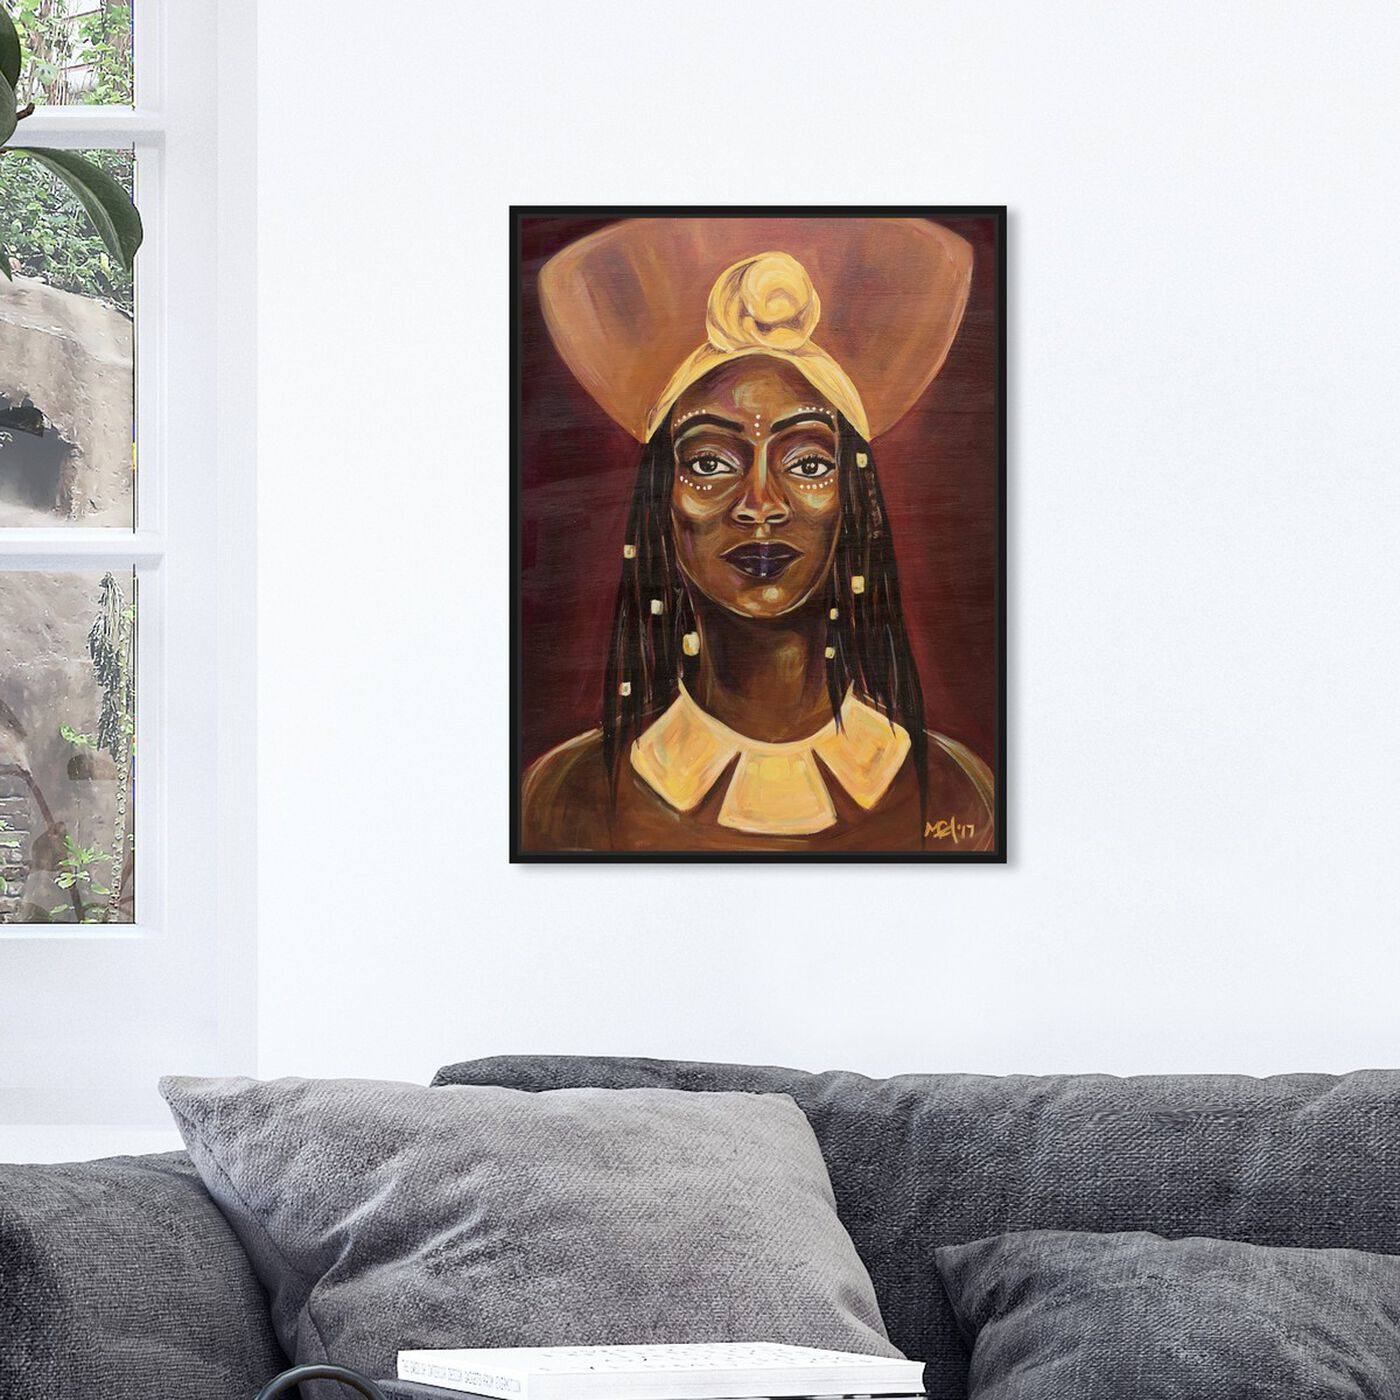 Hanging view of Marissa Anderson - Queen featuring people and portraits and portraits art.